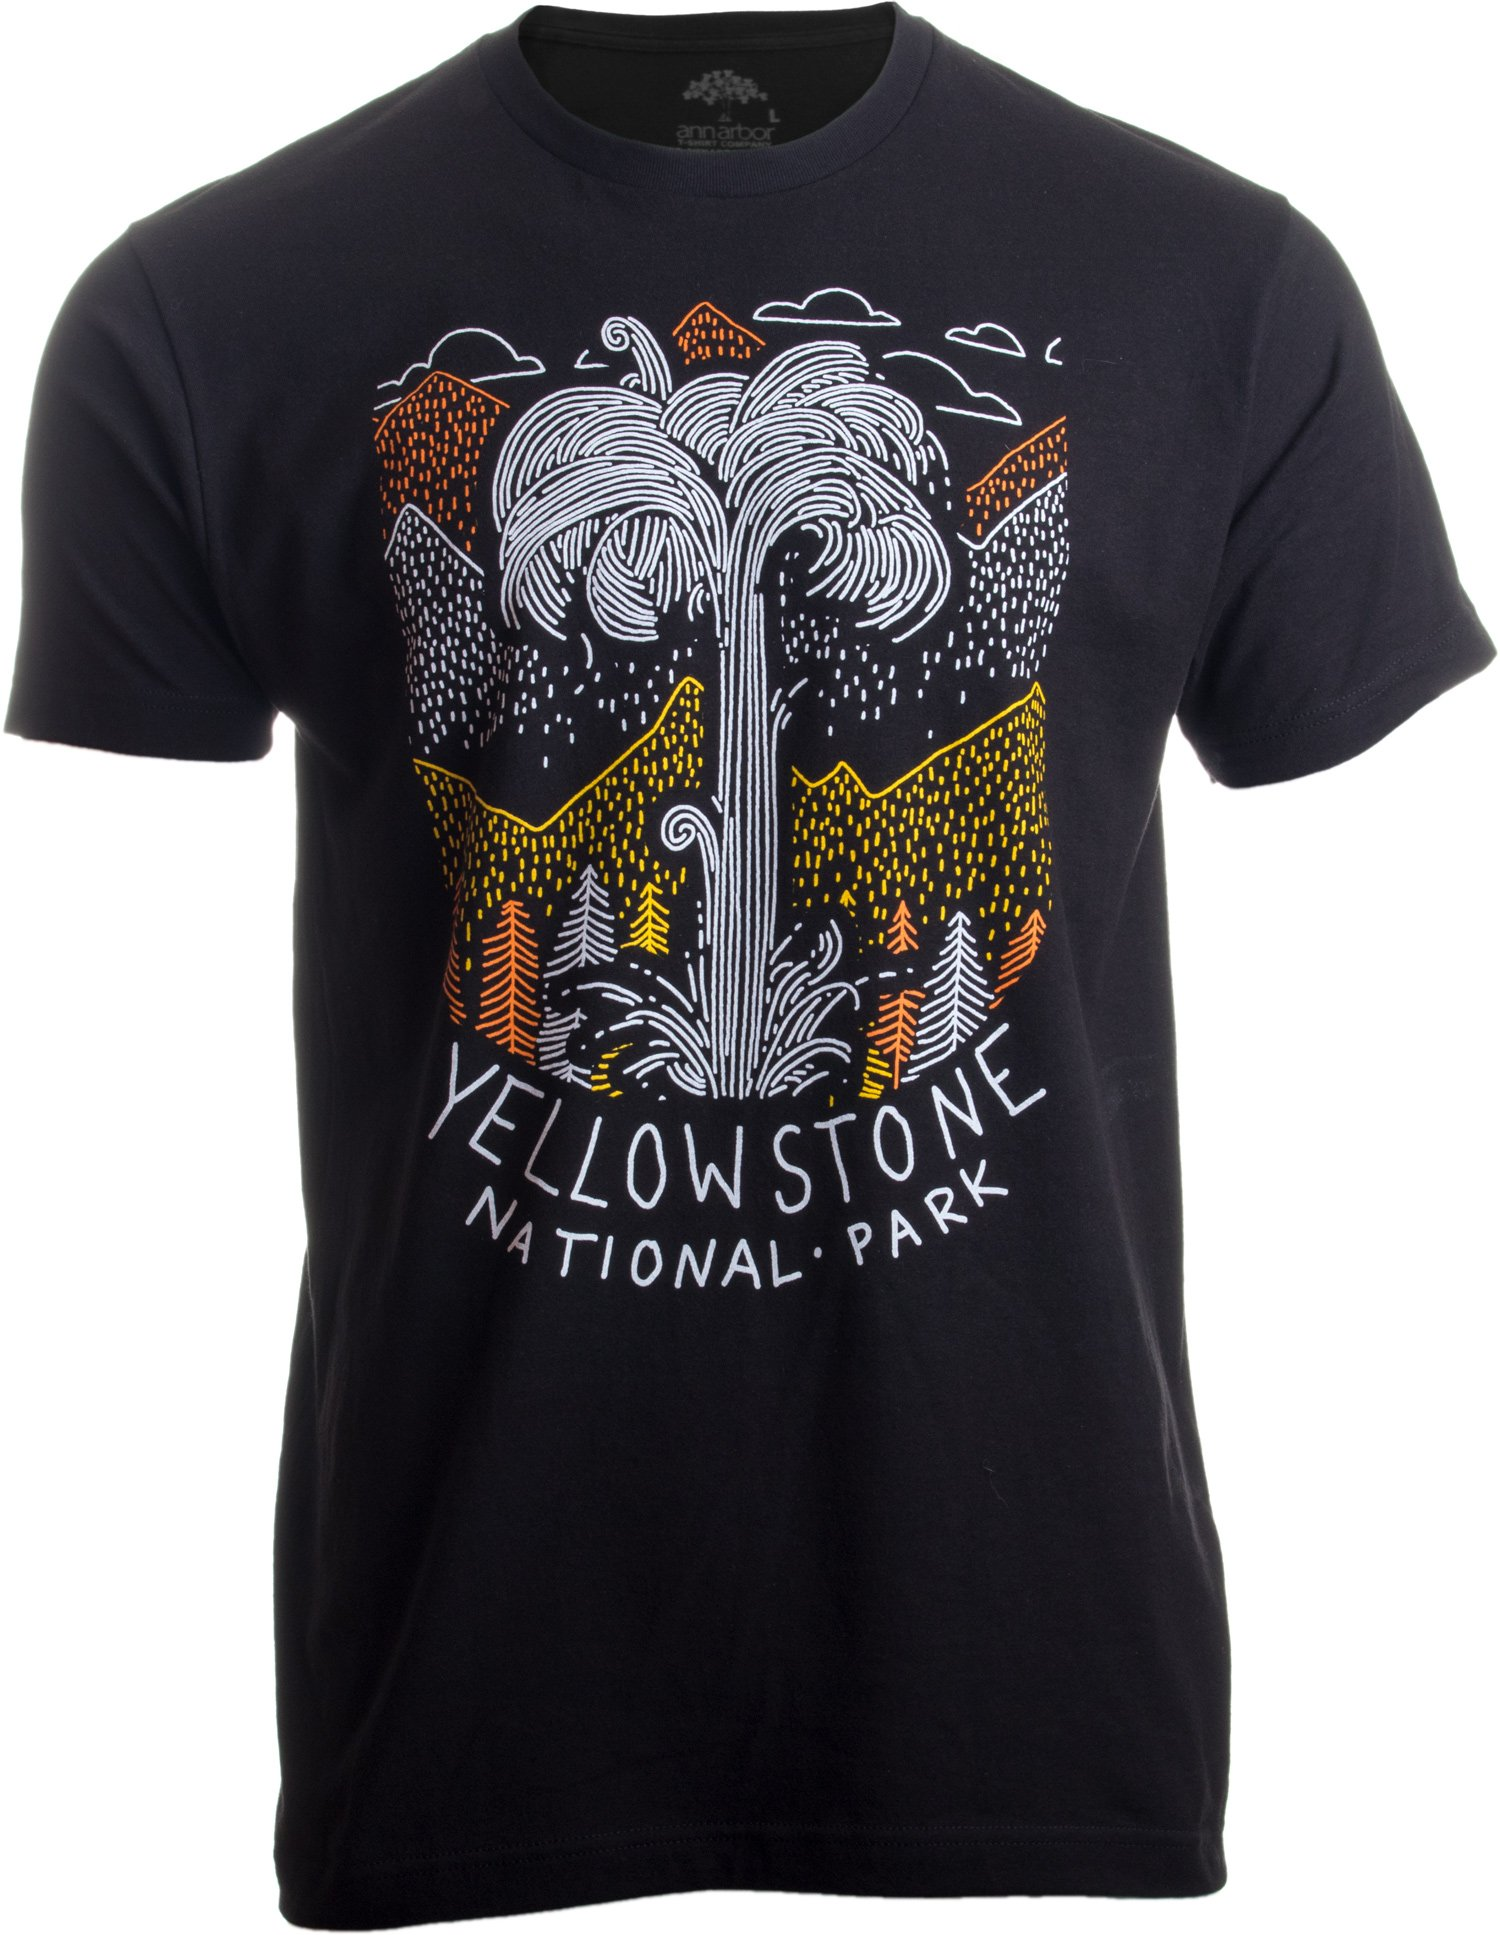 Yellowstone National Park | Geographic Poster Print Travel Art Men Women T-Shirt-(Adult,XL)